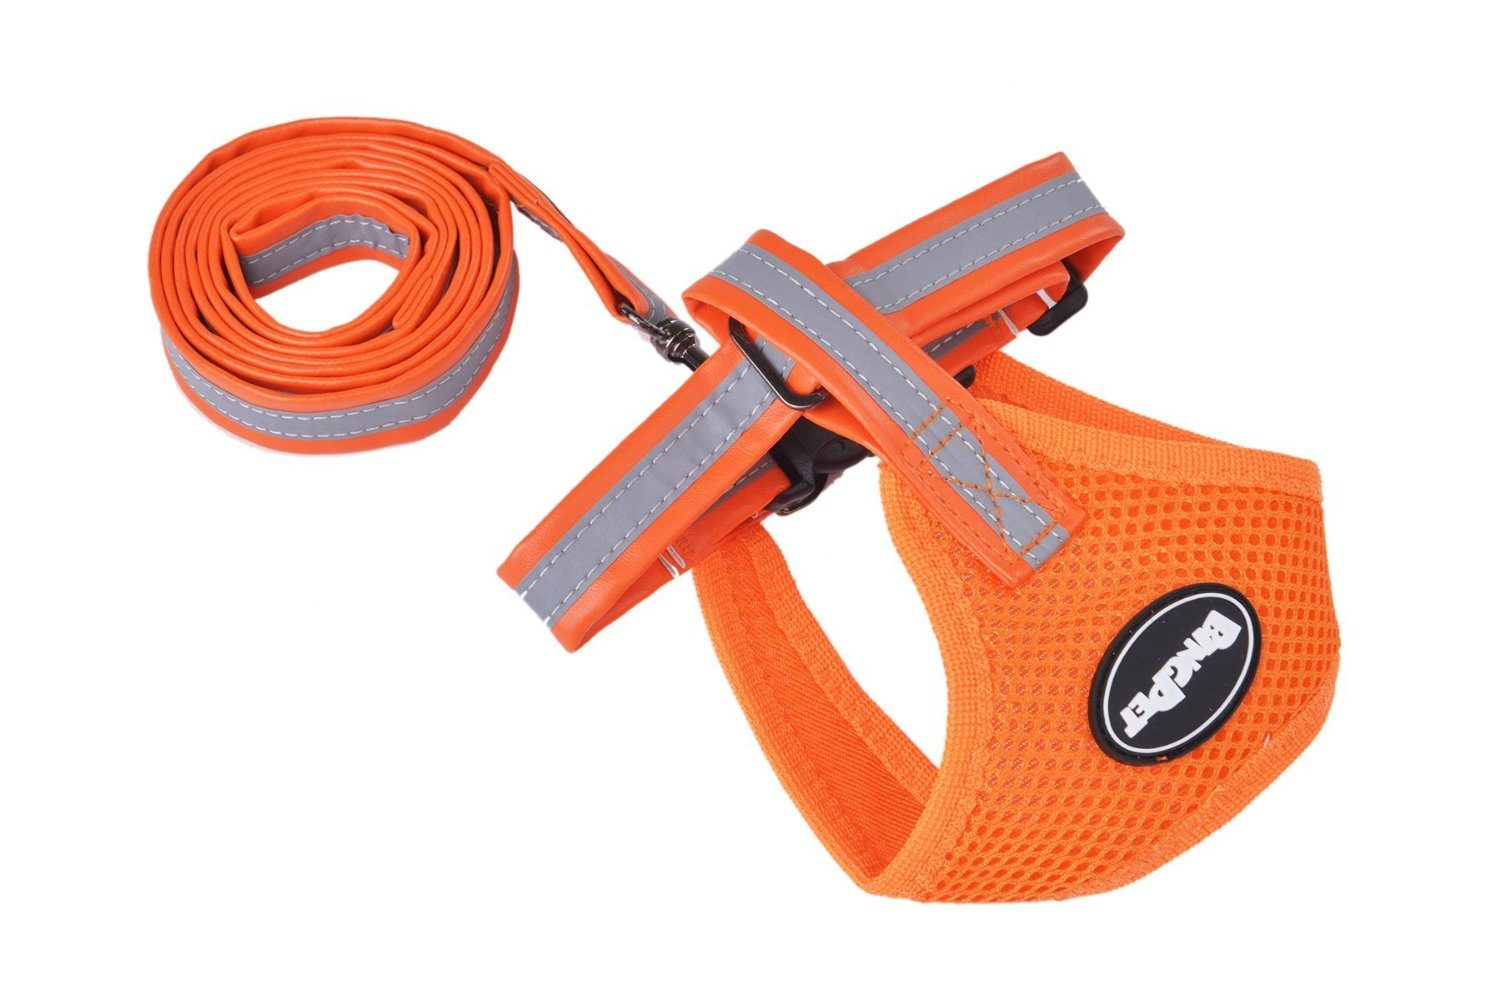 PUPTECK Mesh Soft Pet Dog Harness and Leather Leash Set